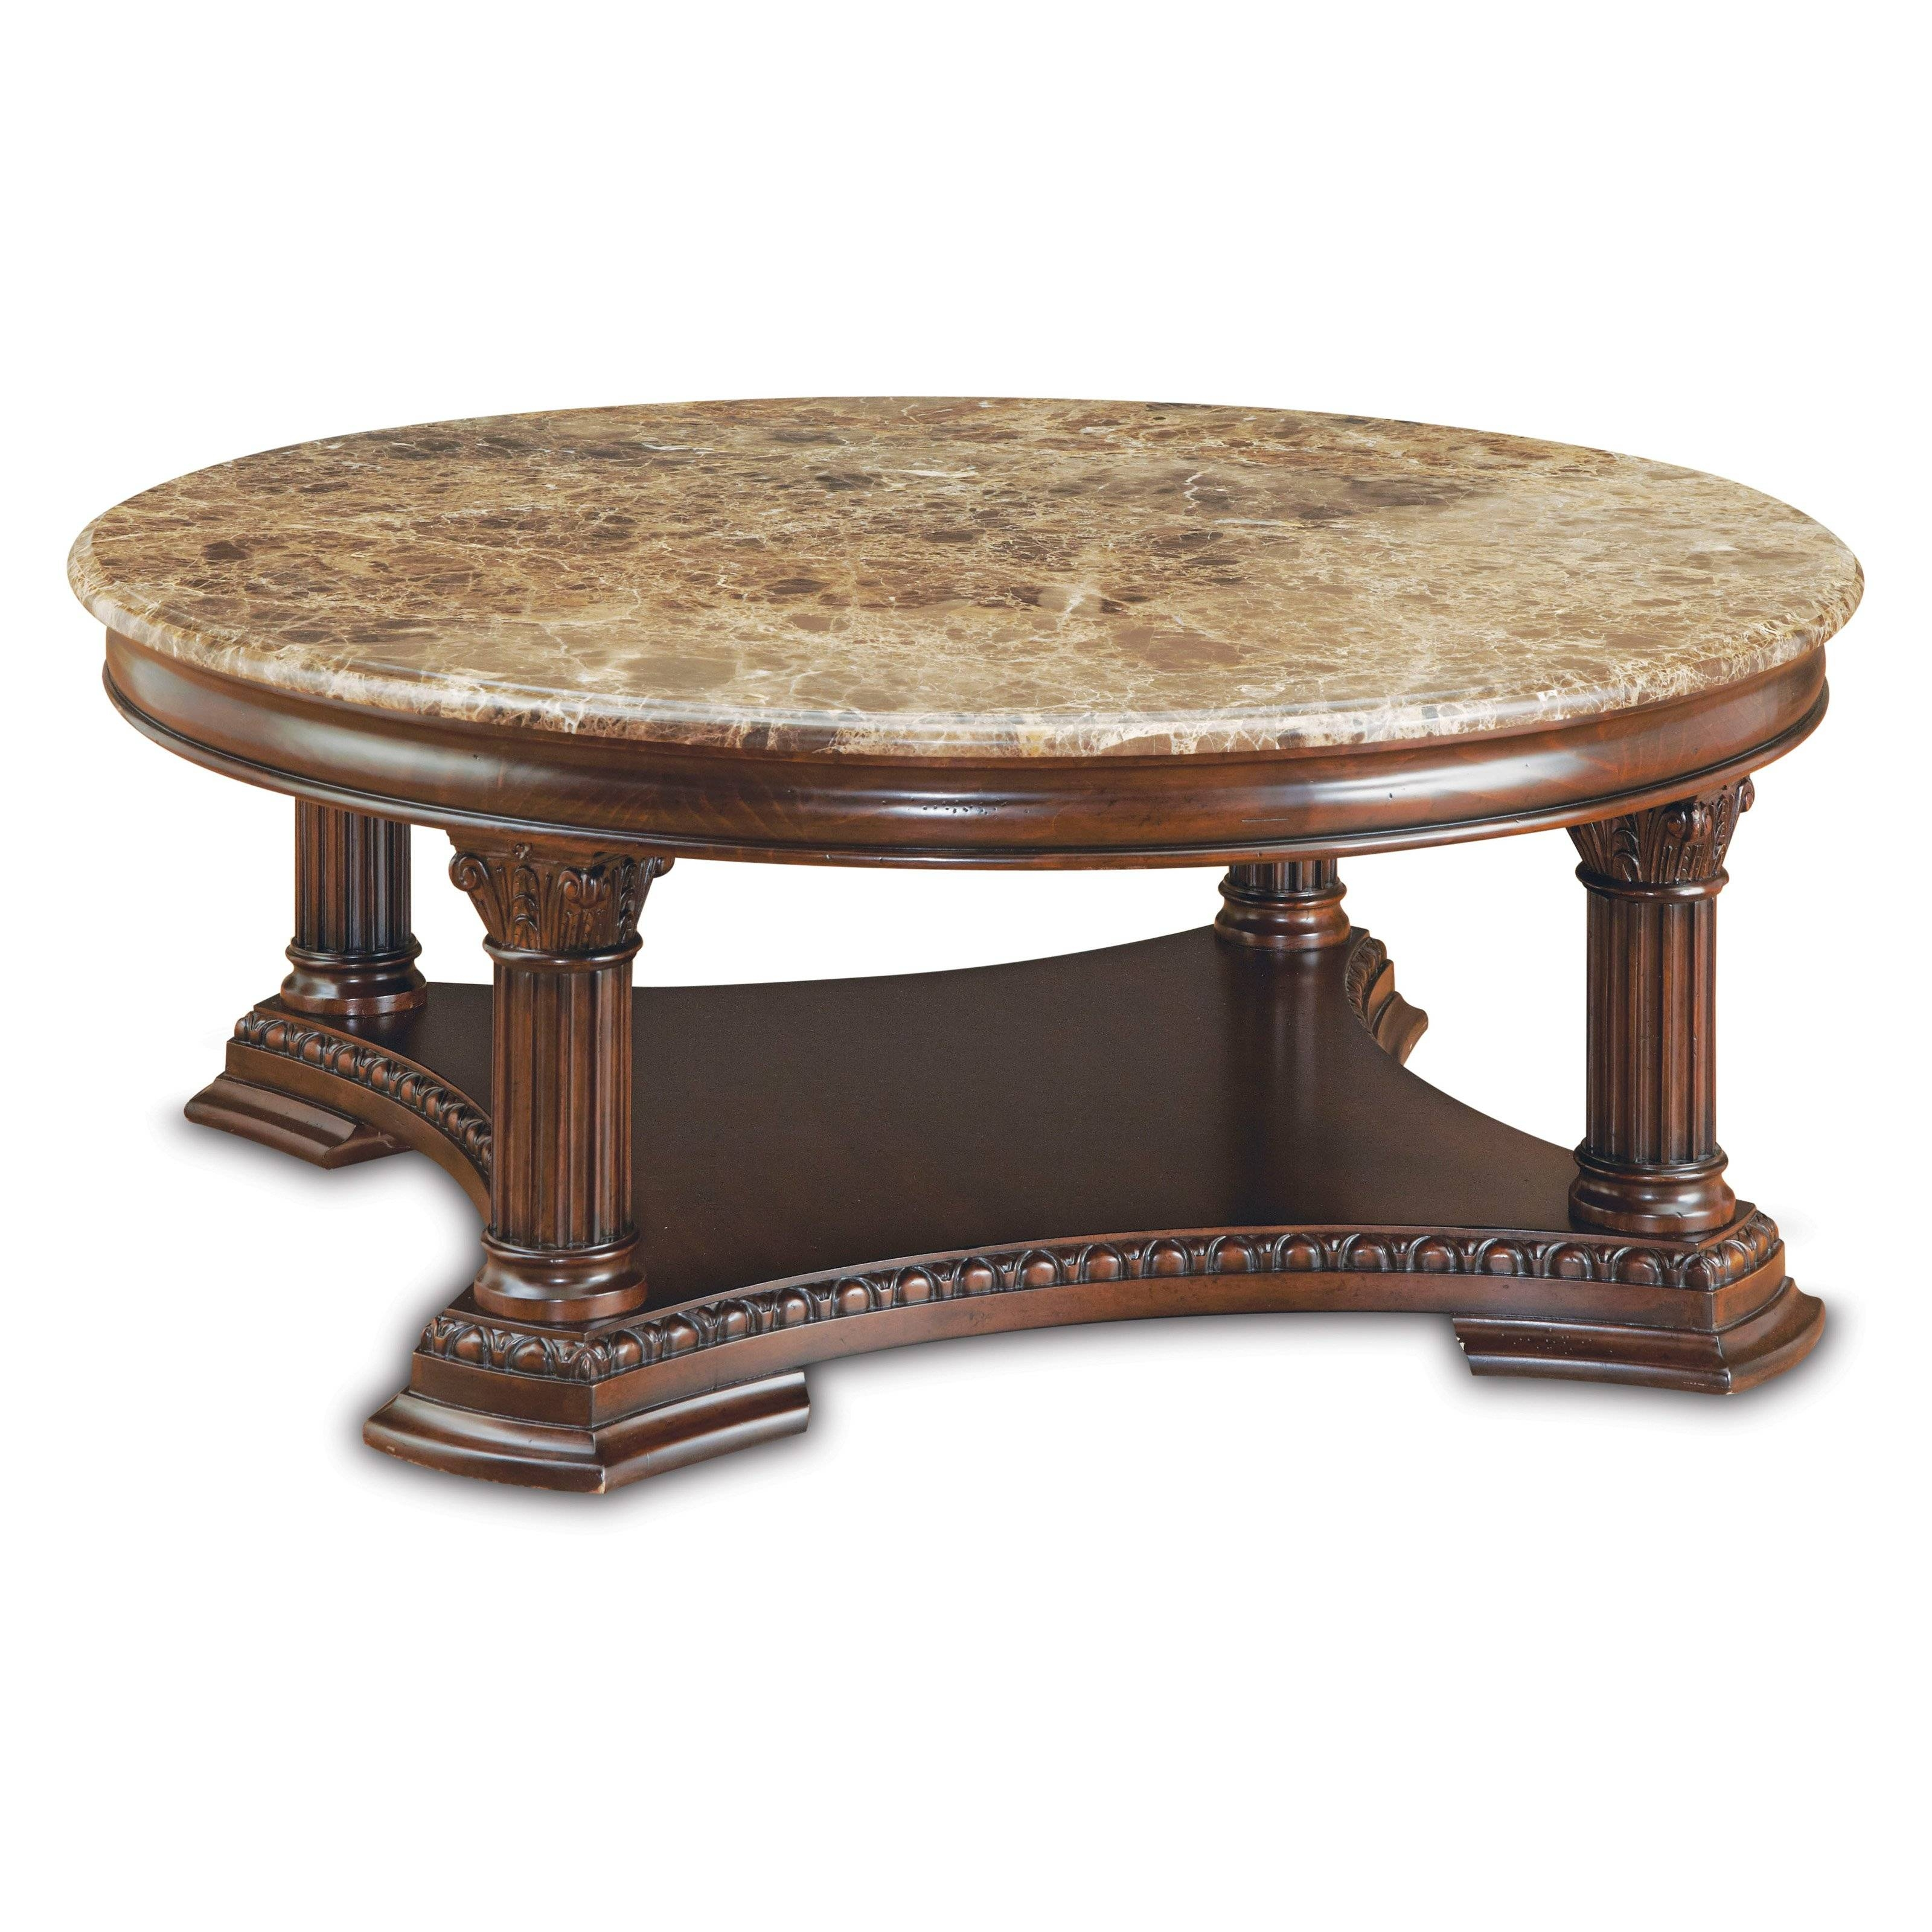 A.r.t. Furniture Capri Round Coffee Table - Claret - Coffee Tables pertaining to Marble Round Coffee Tables (Image 3 of 30)